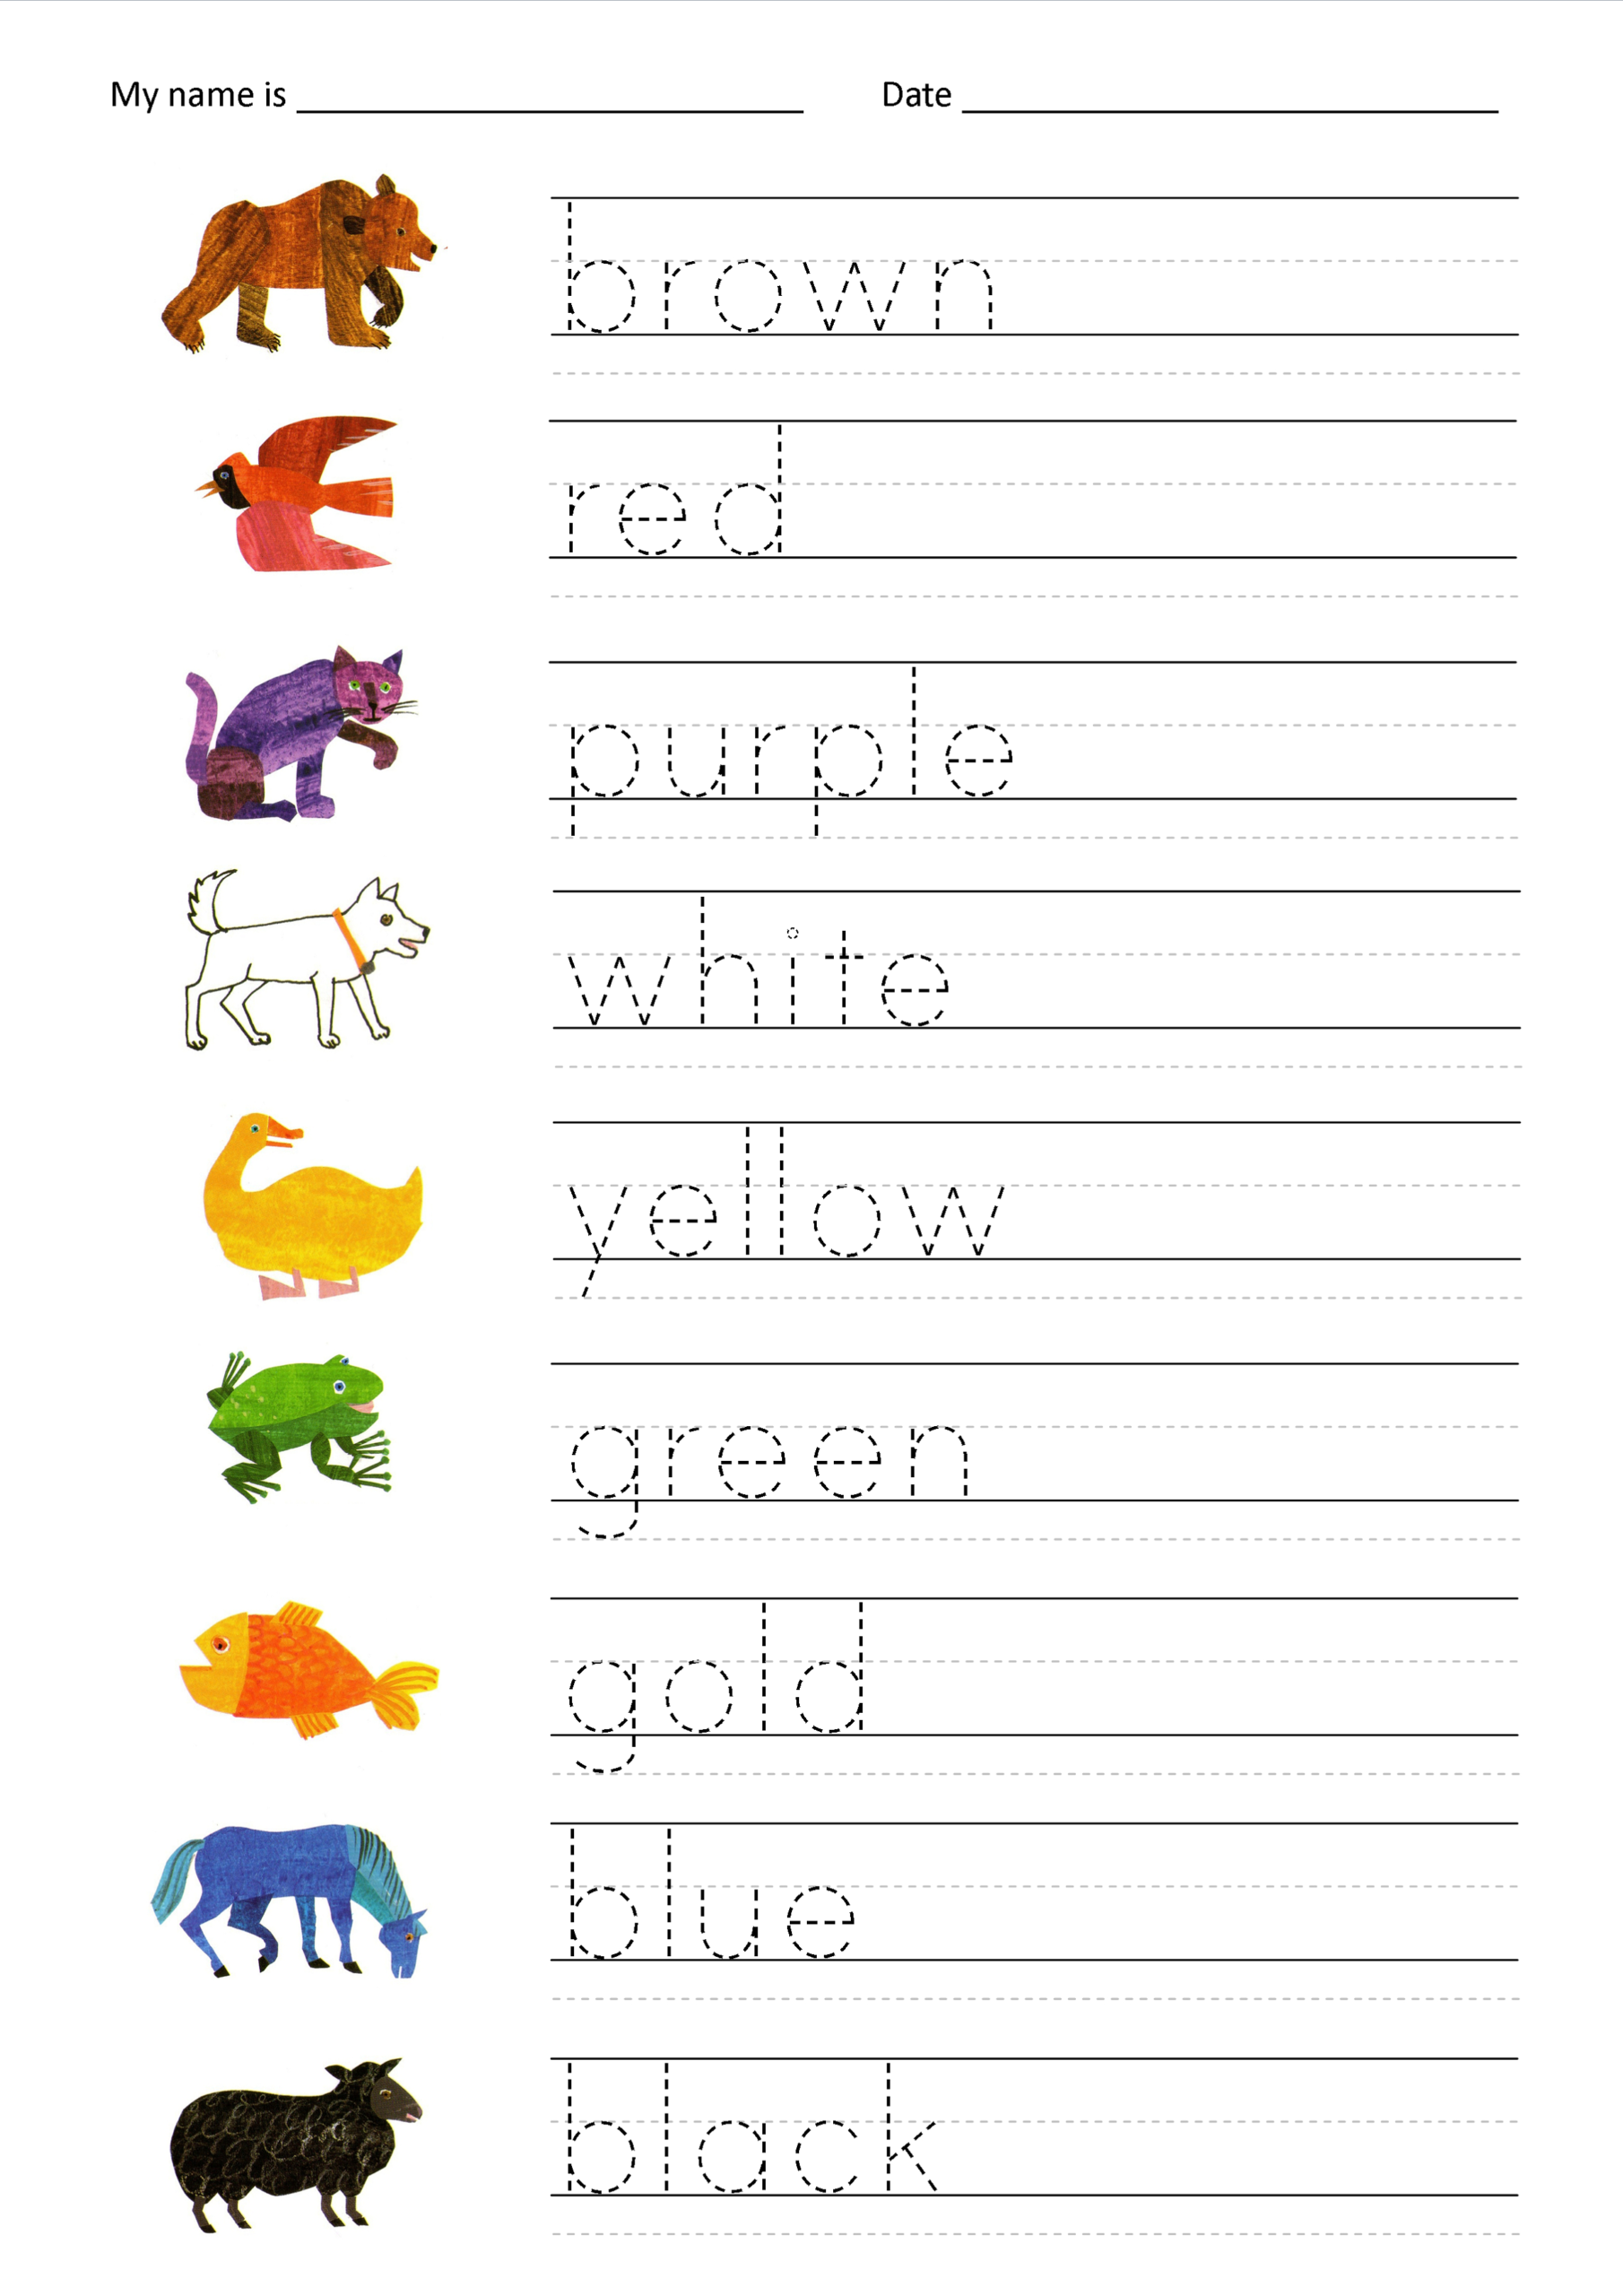 Free Name Tracing Worksheets Pictures - Activities Free inside Name Tracing Worksheets